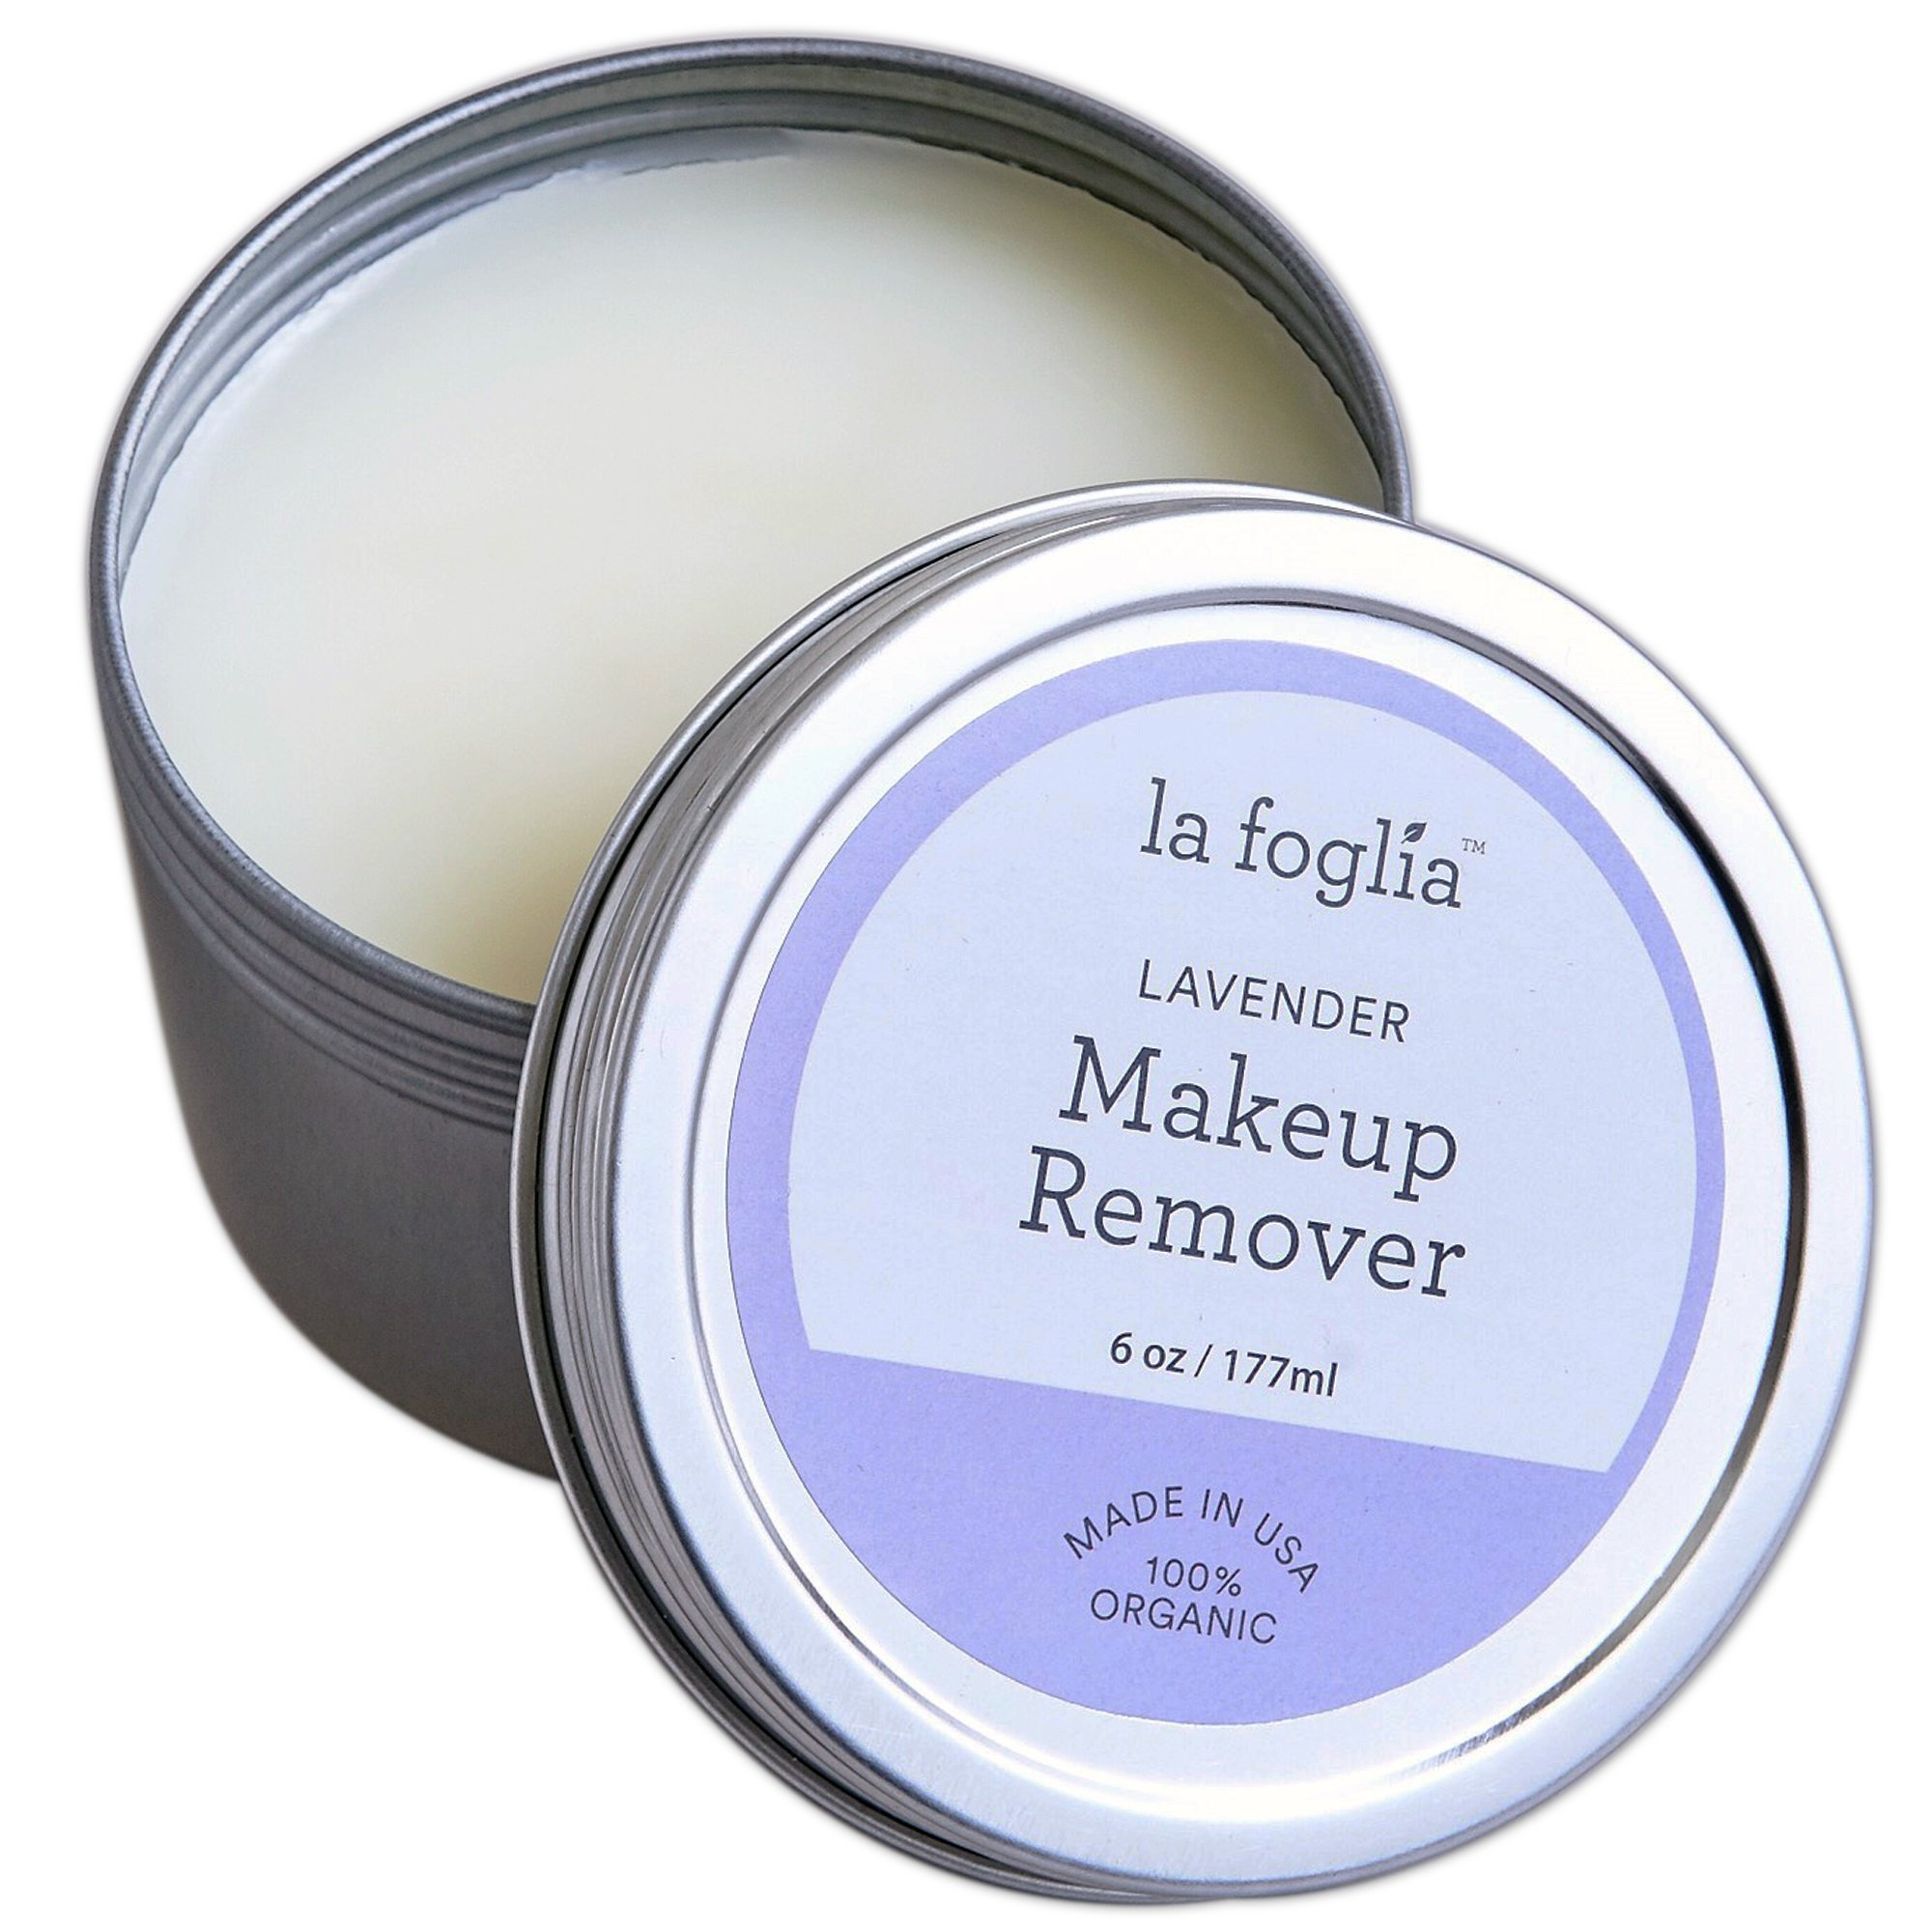 La Foglia Lavender Makeup Remover (Made In USA)100% Organic Lavender Makeup Removal and Face, Body Cream With Pure all Natural Ingredients - 6 Ounces by La Foglia